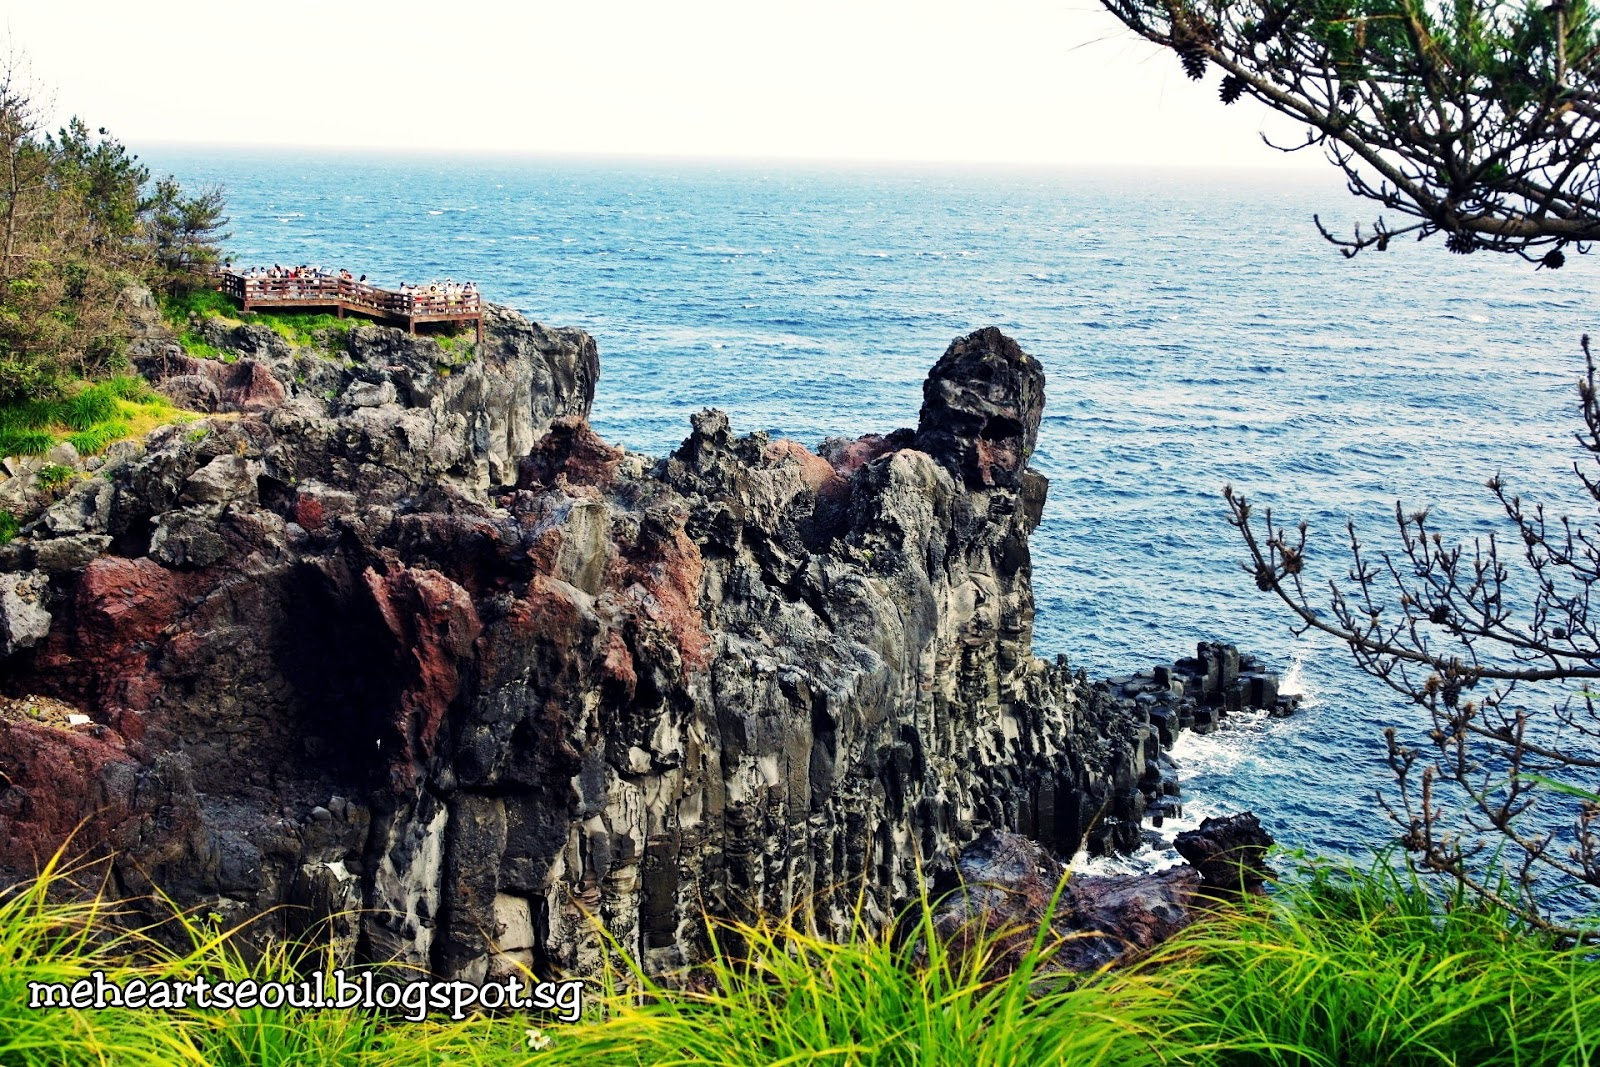 Recommended Taxi Tour to tourist attractions in Jeju | meheartseoul